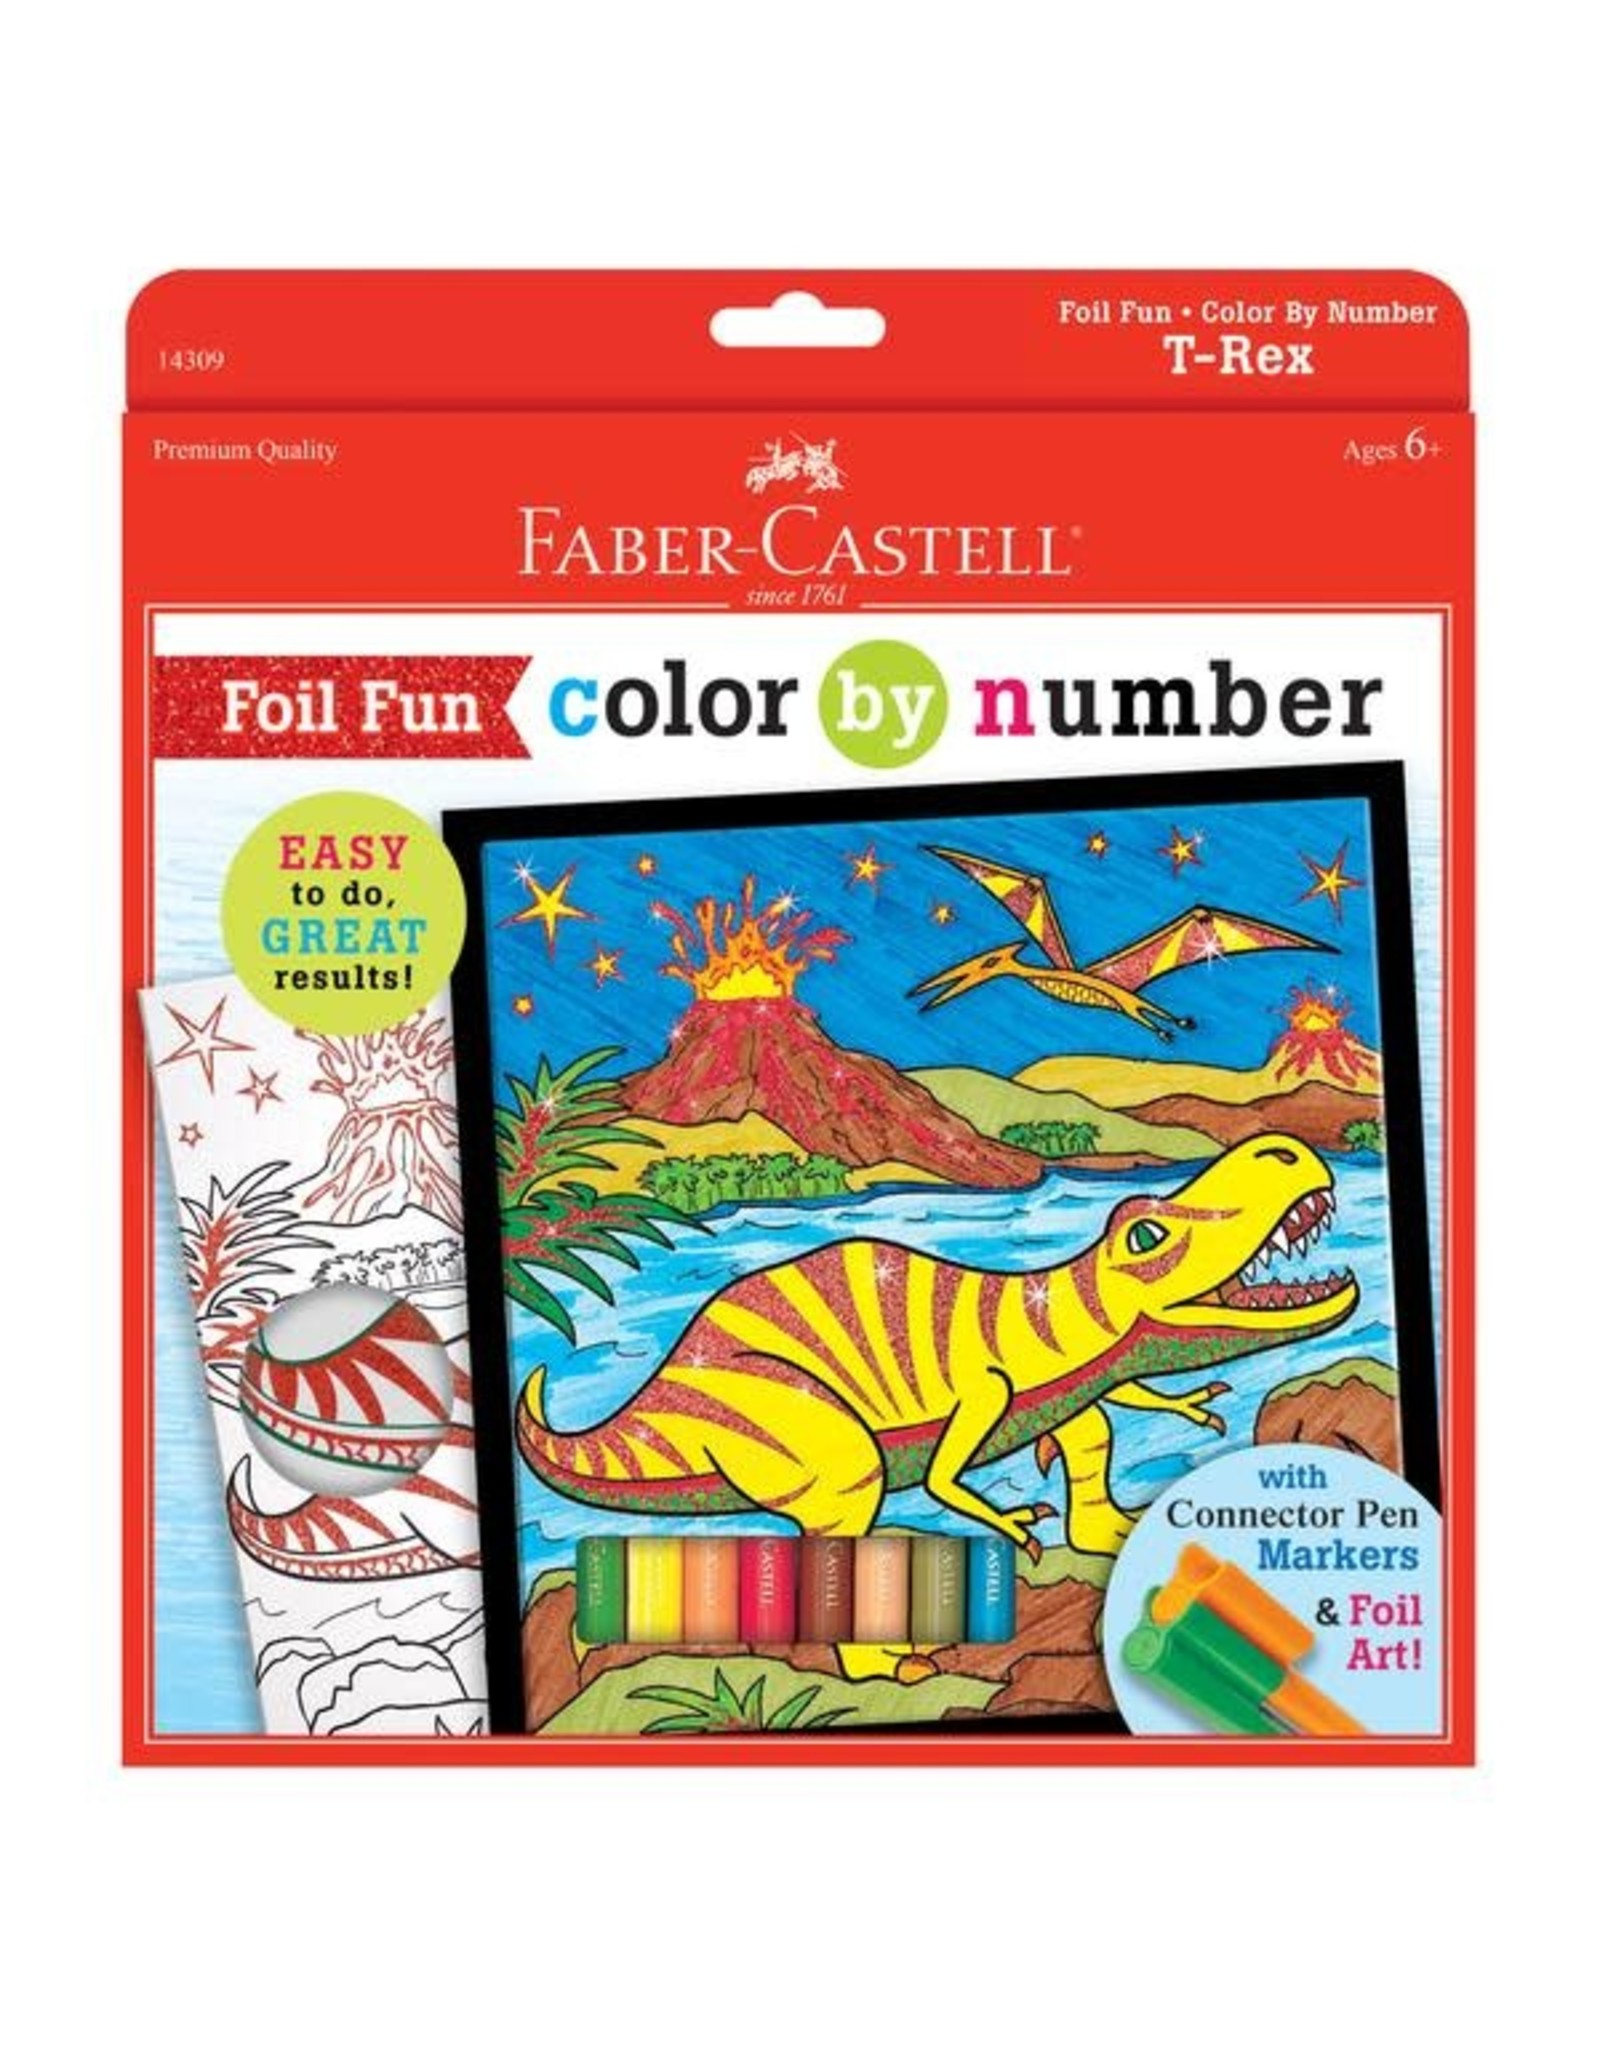 Faber Castell Color By Number T-Rex Foil Fun